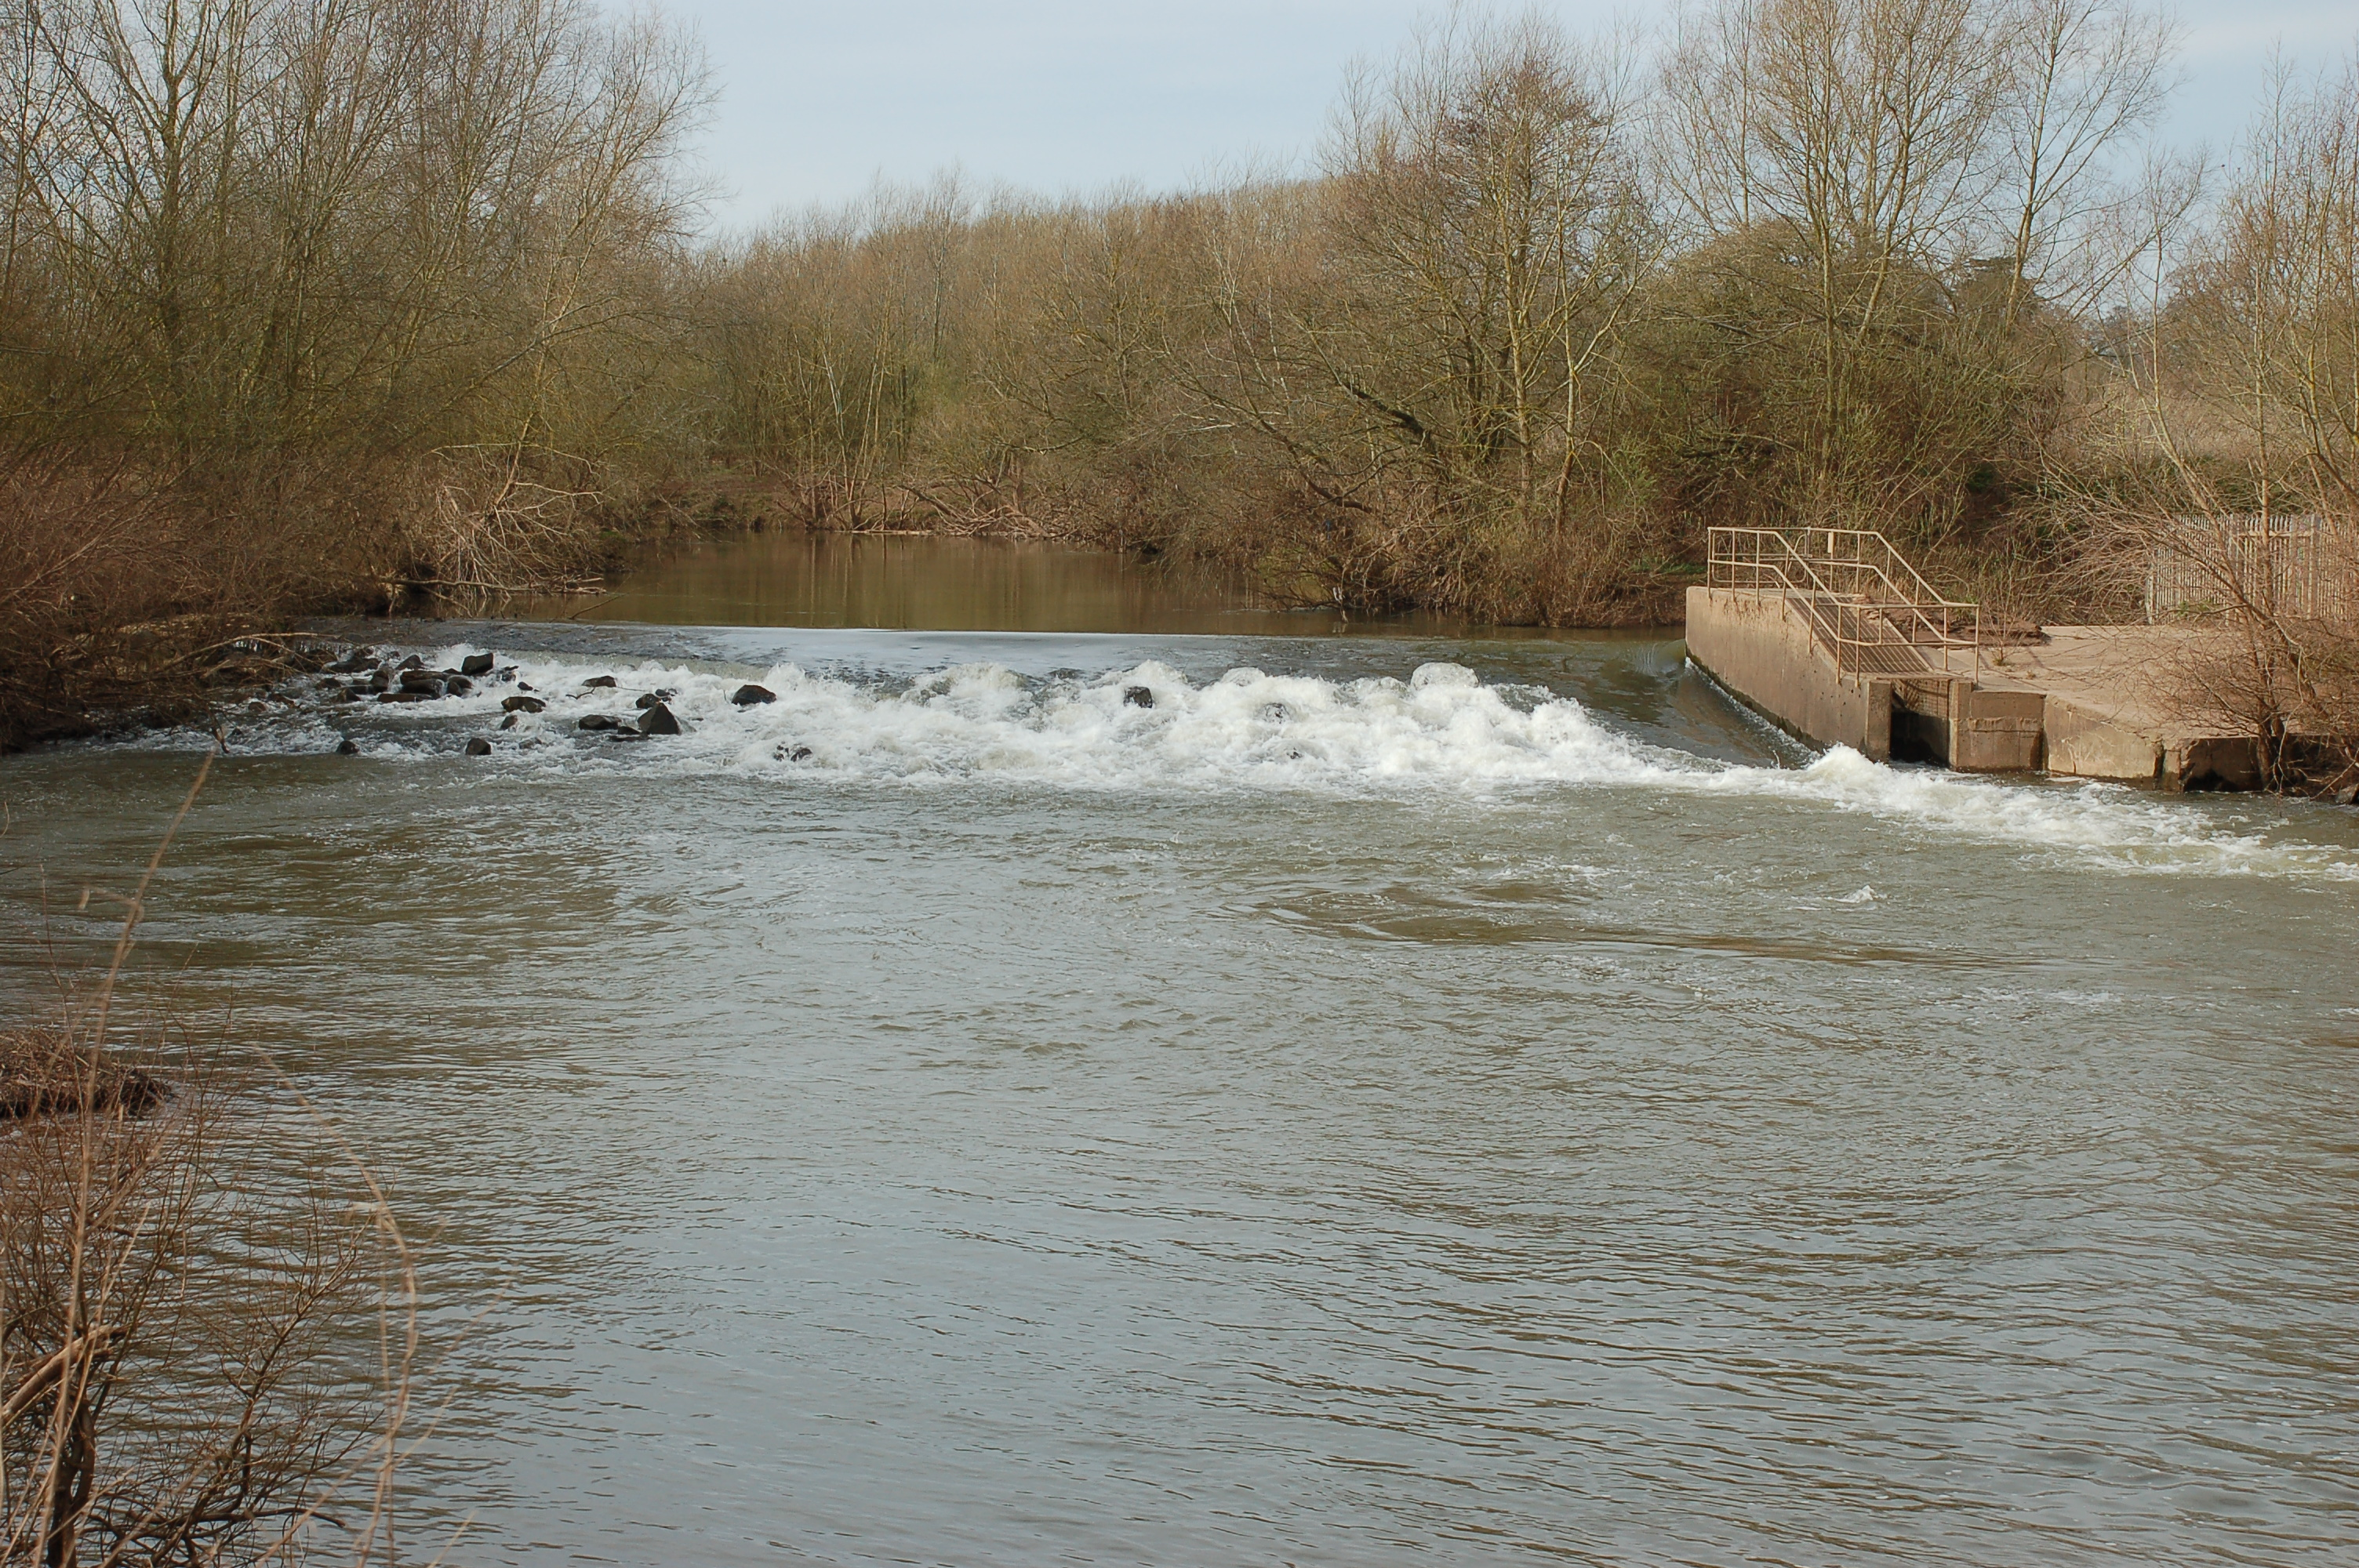 Work will be undertaken on 7 weirs to enable fish to move more easily up the river. Credit: Canal and River Trust.